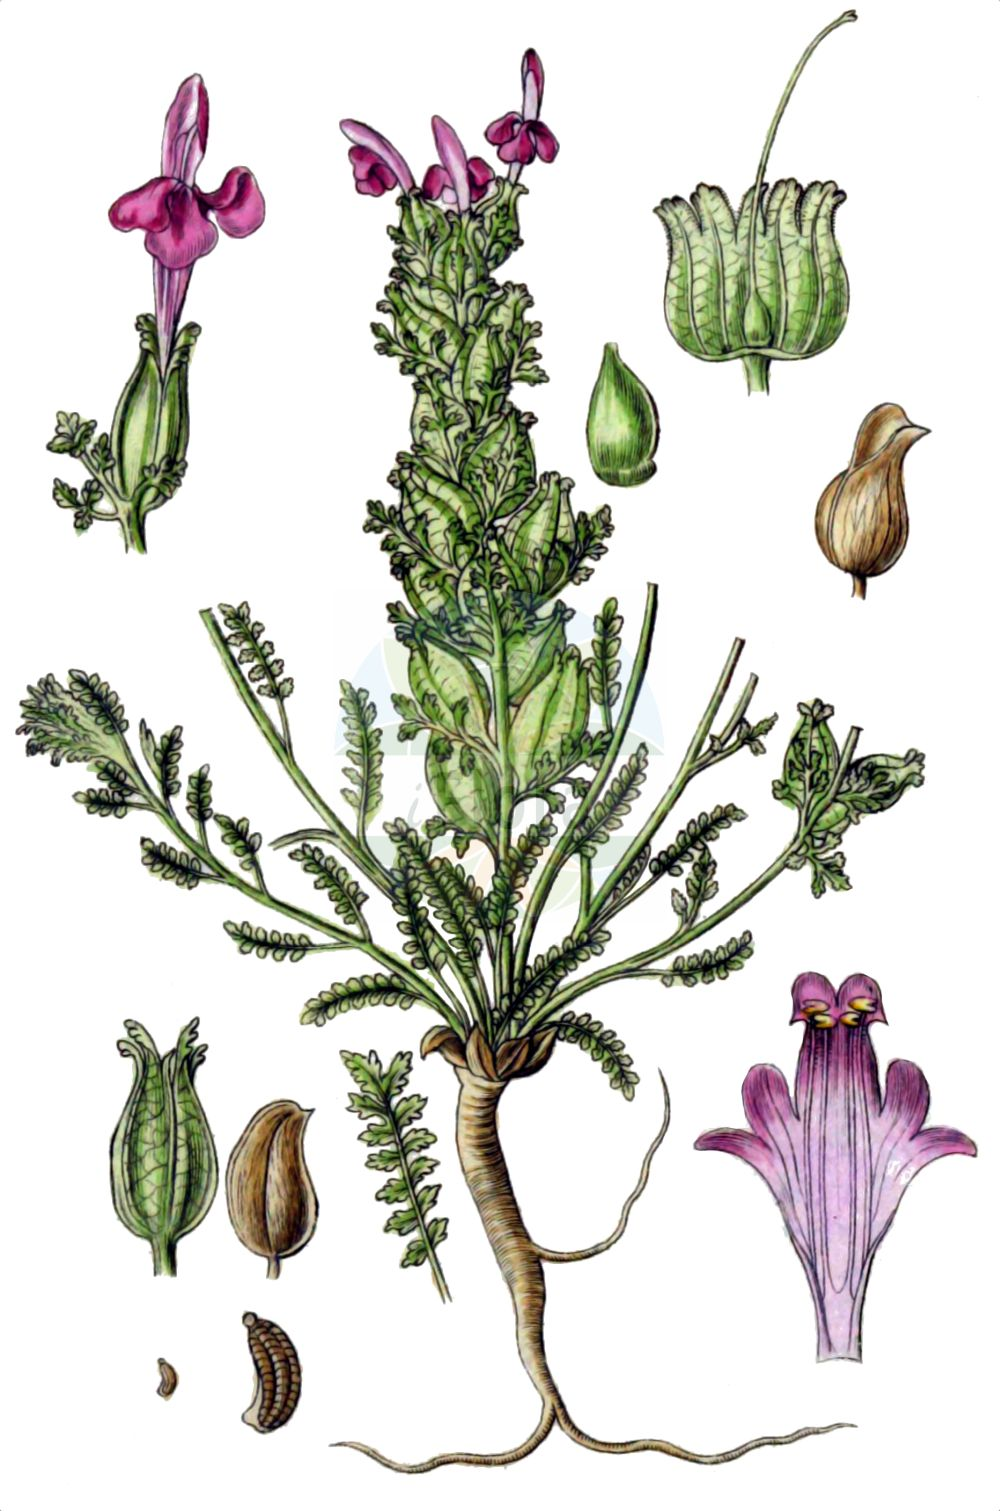 Historische Abbildung von Pedicularis sylvatica (Wald-Laeusekraut - Lousewort). Das Bild zeigt Blatt, Bluete, Frucht und Same. ---- Historical Drawing of Pedicularis sylvatica (Wald-Laeusekraut - Lousewort).The image is showing leaf, flower, fruit and seed.(Pedicularis sylvatica,Wald-Laeusekraut,Lousewort,Pedicularis sylvatica,Wald-Laeusekraut,Lousewort,Common Lousewort,Pedicularis,Laeusekraut,Lousewort,Orobanchaceae,Sommerwurzgewaechse,Broomrape family,Blatt,Bluete,Frucht,Same,leaf,flower,fruit,seed,Sturm (1796f))